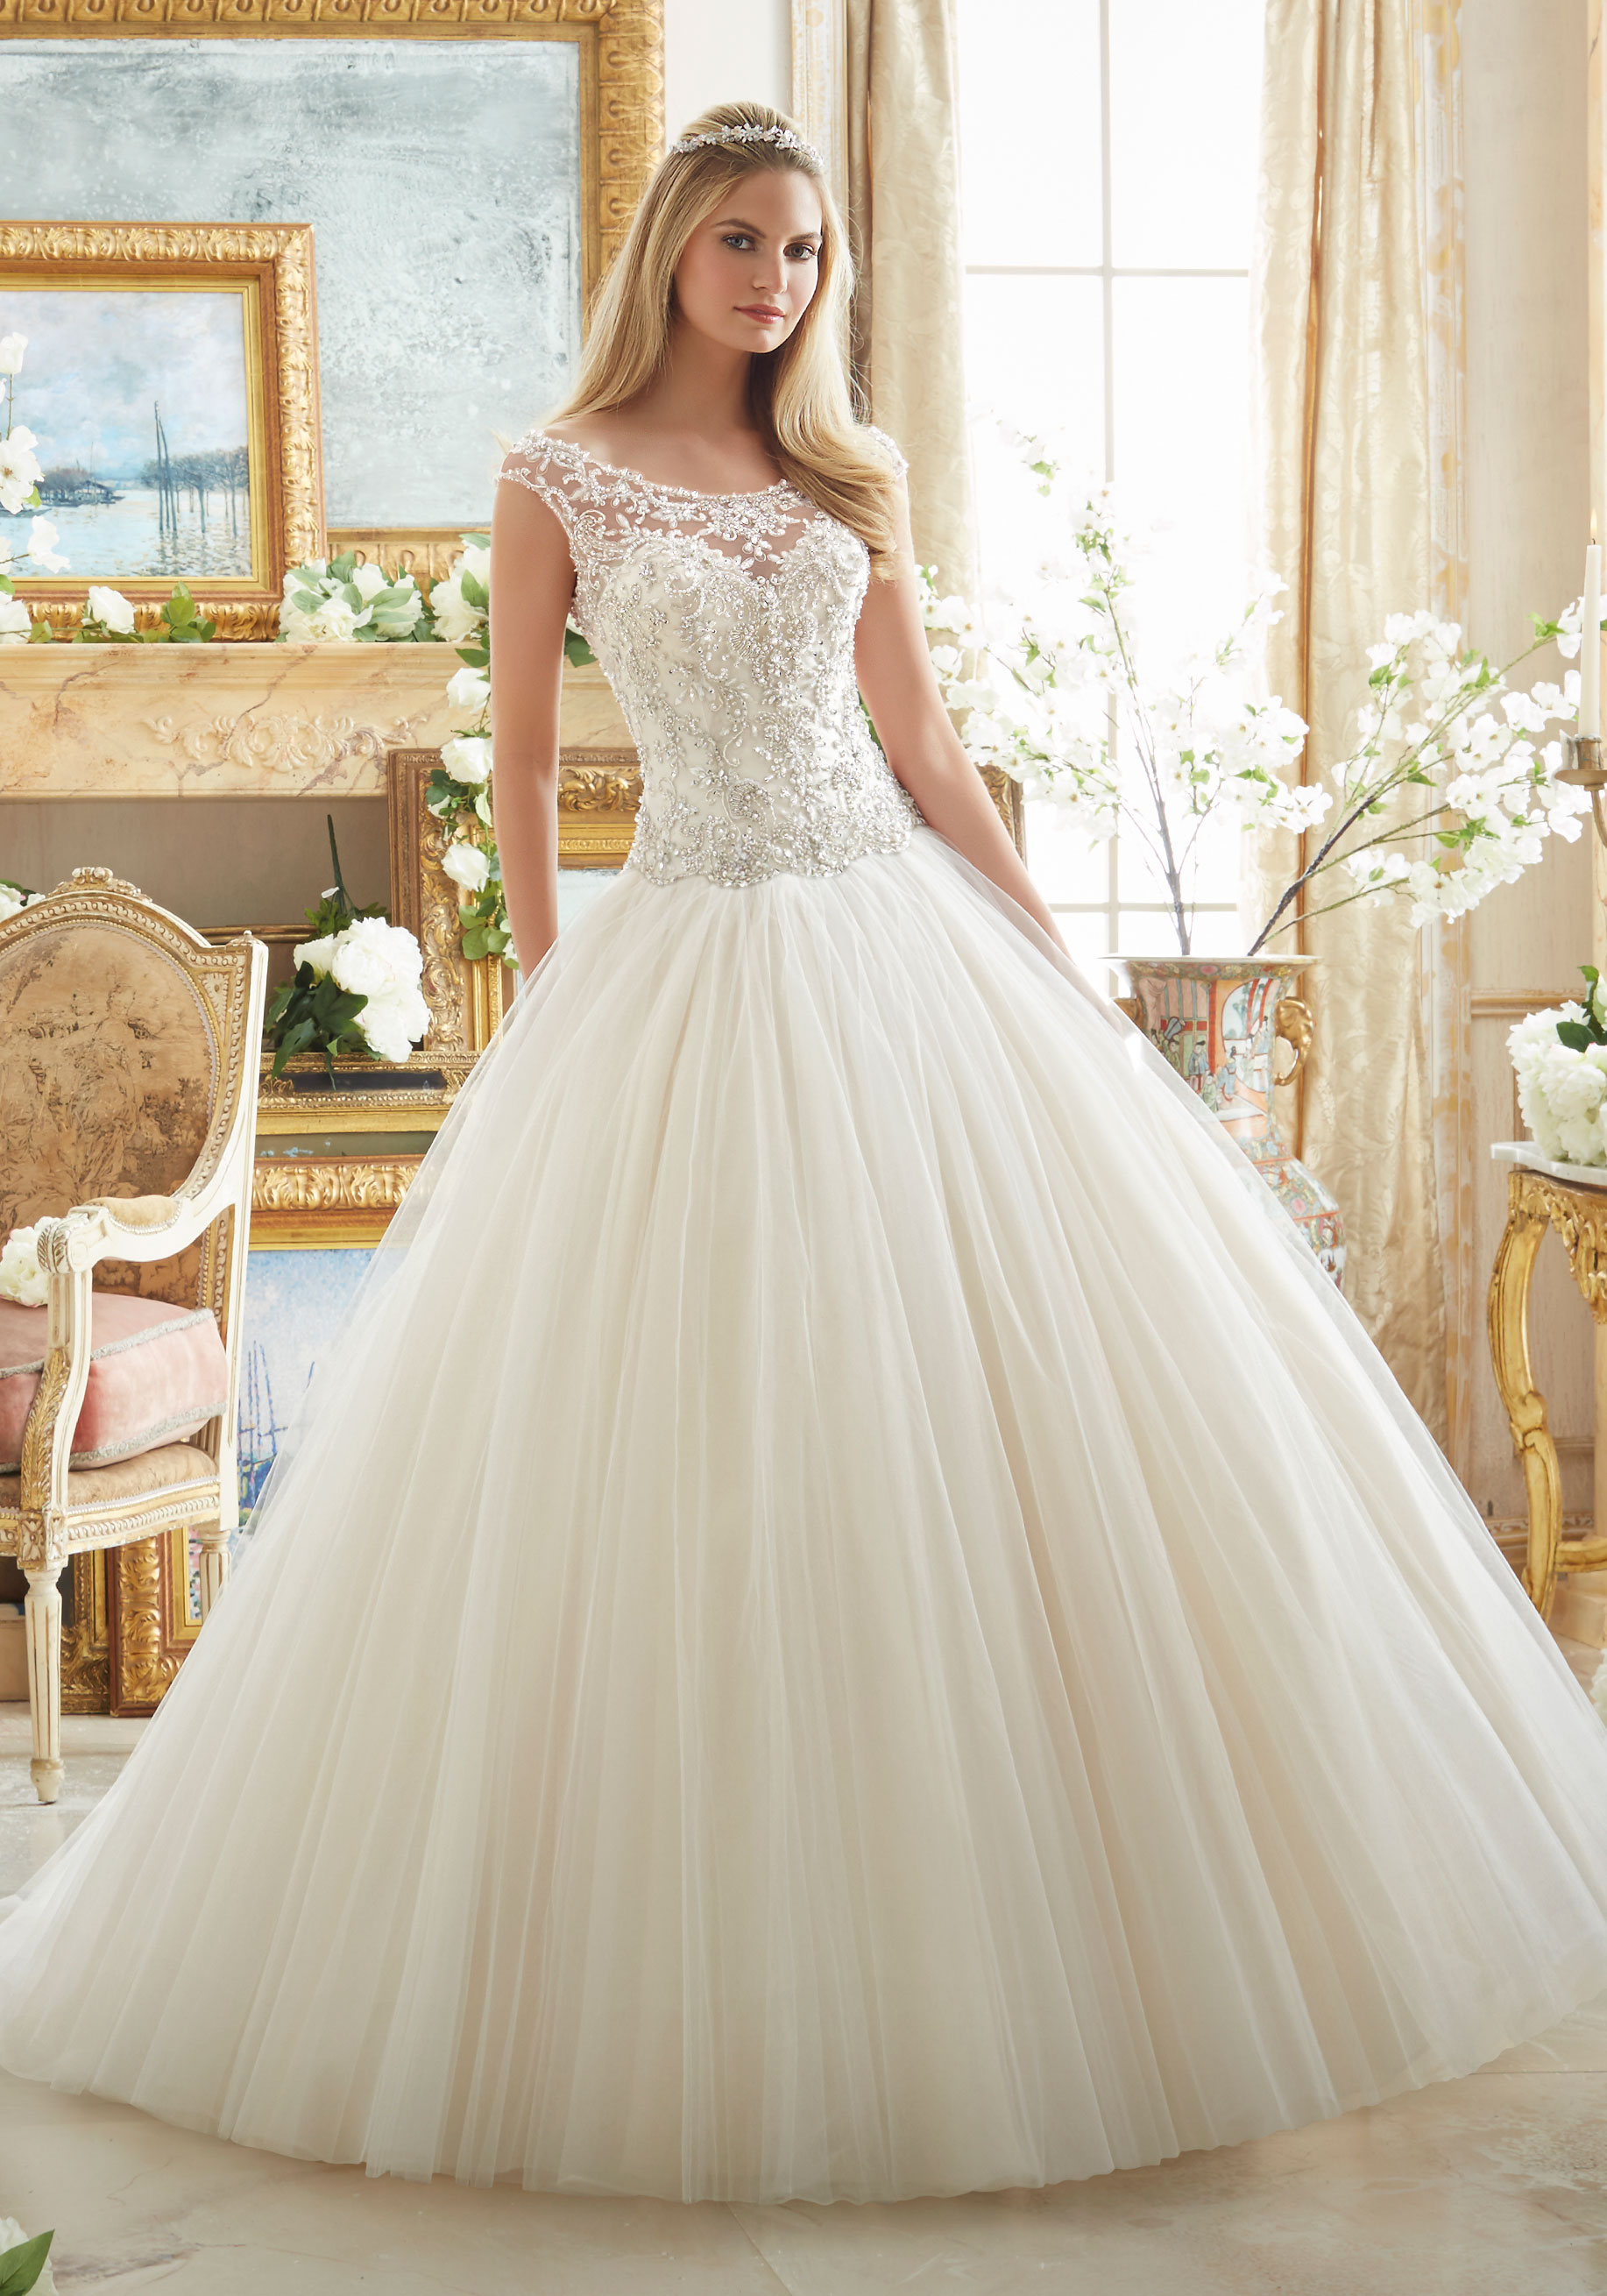 Wedding Dress Websites With Prices : Elegancia bridal austin quinceanera dresses prom